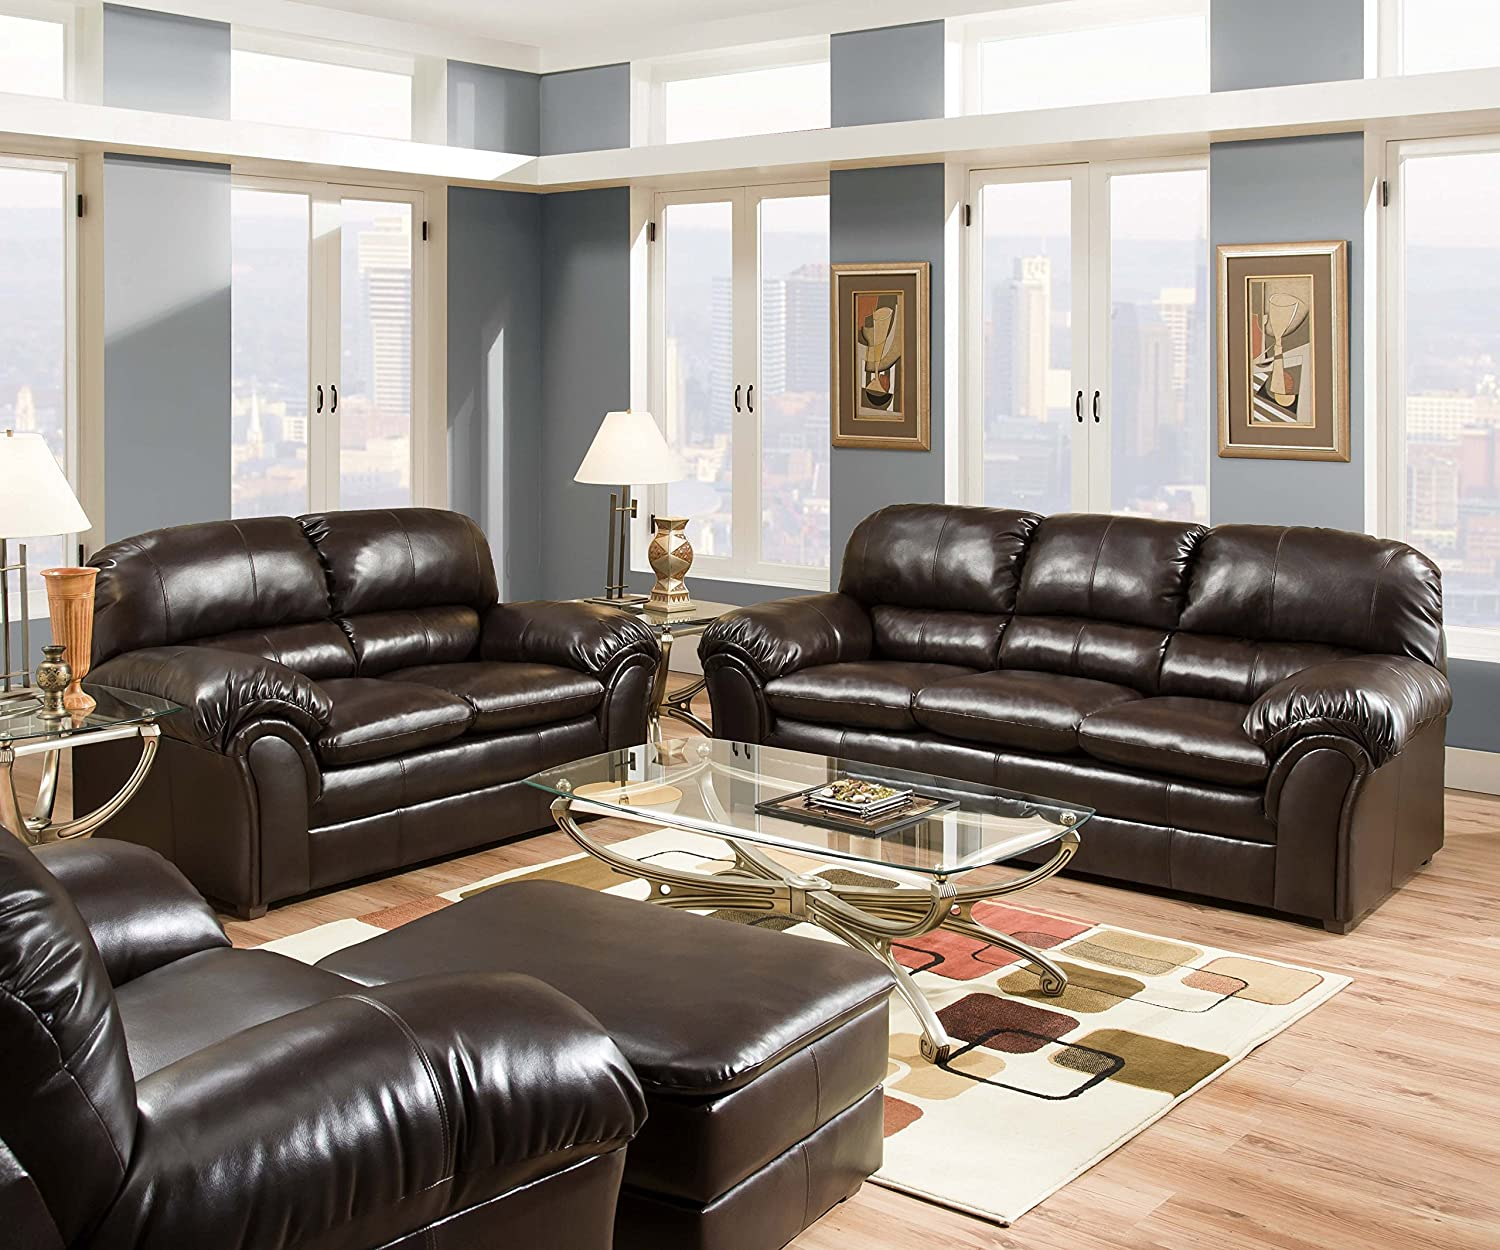 Amazon.com Simmons Upholstery 6159-02 Vintage Riverside Bonded Leather Loveseat Kitchen u0026 Dining & Amazon.com: Simmons Upholstery 6159-02 Vintage Riverside Bonded ... islam-shia.org